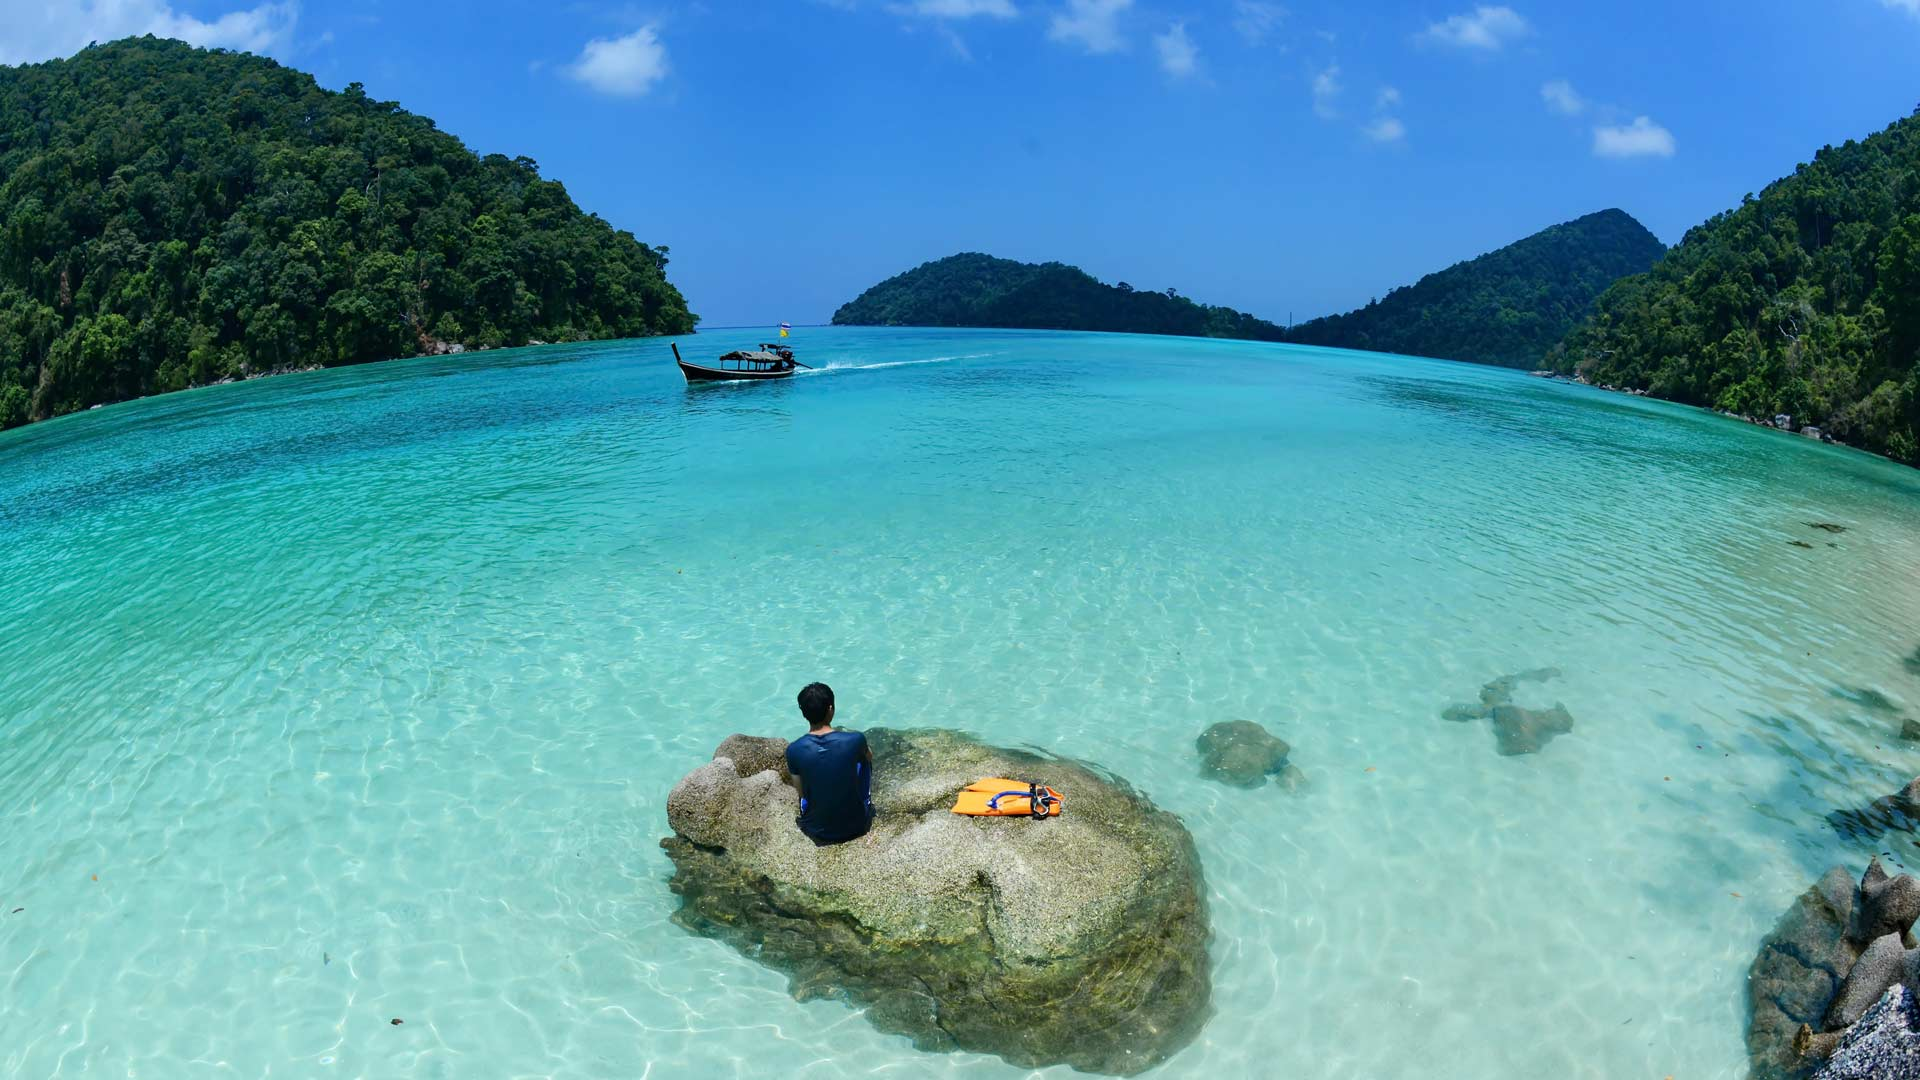 Surin islands 2 days - 1 night overnight snorkeling tour